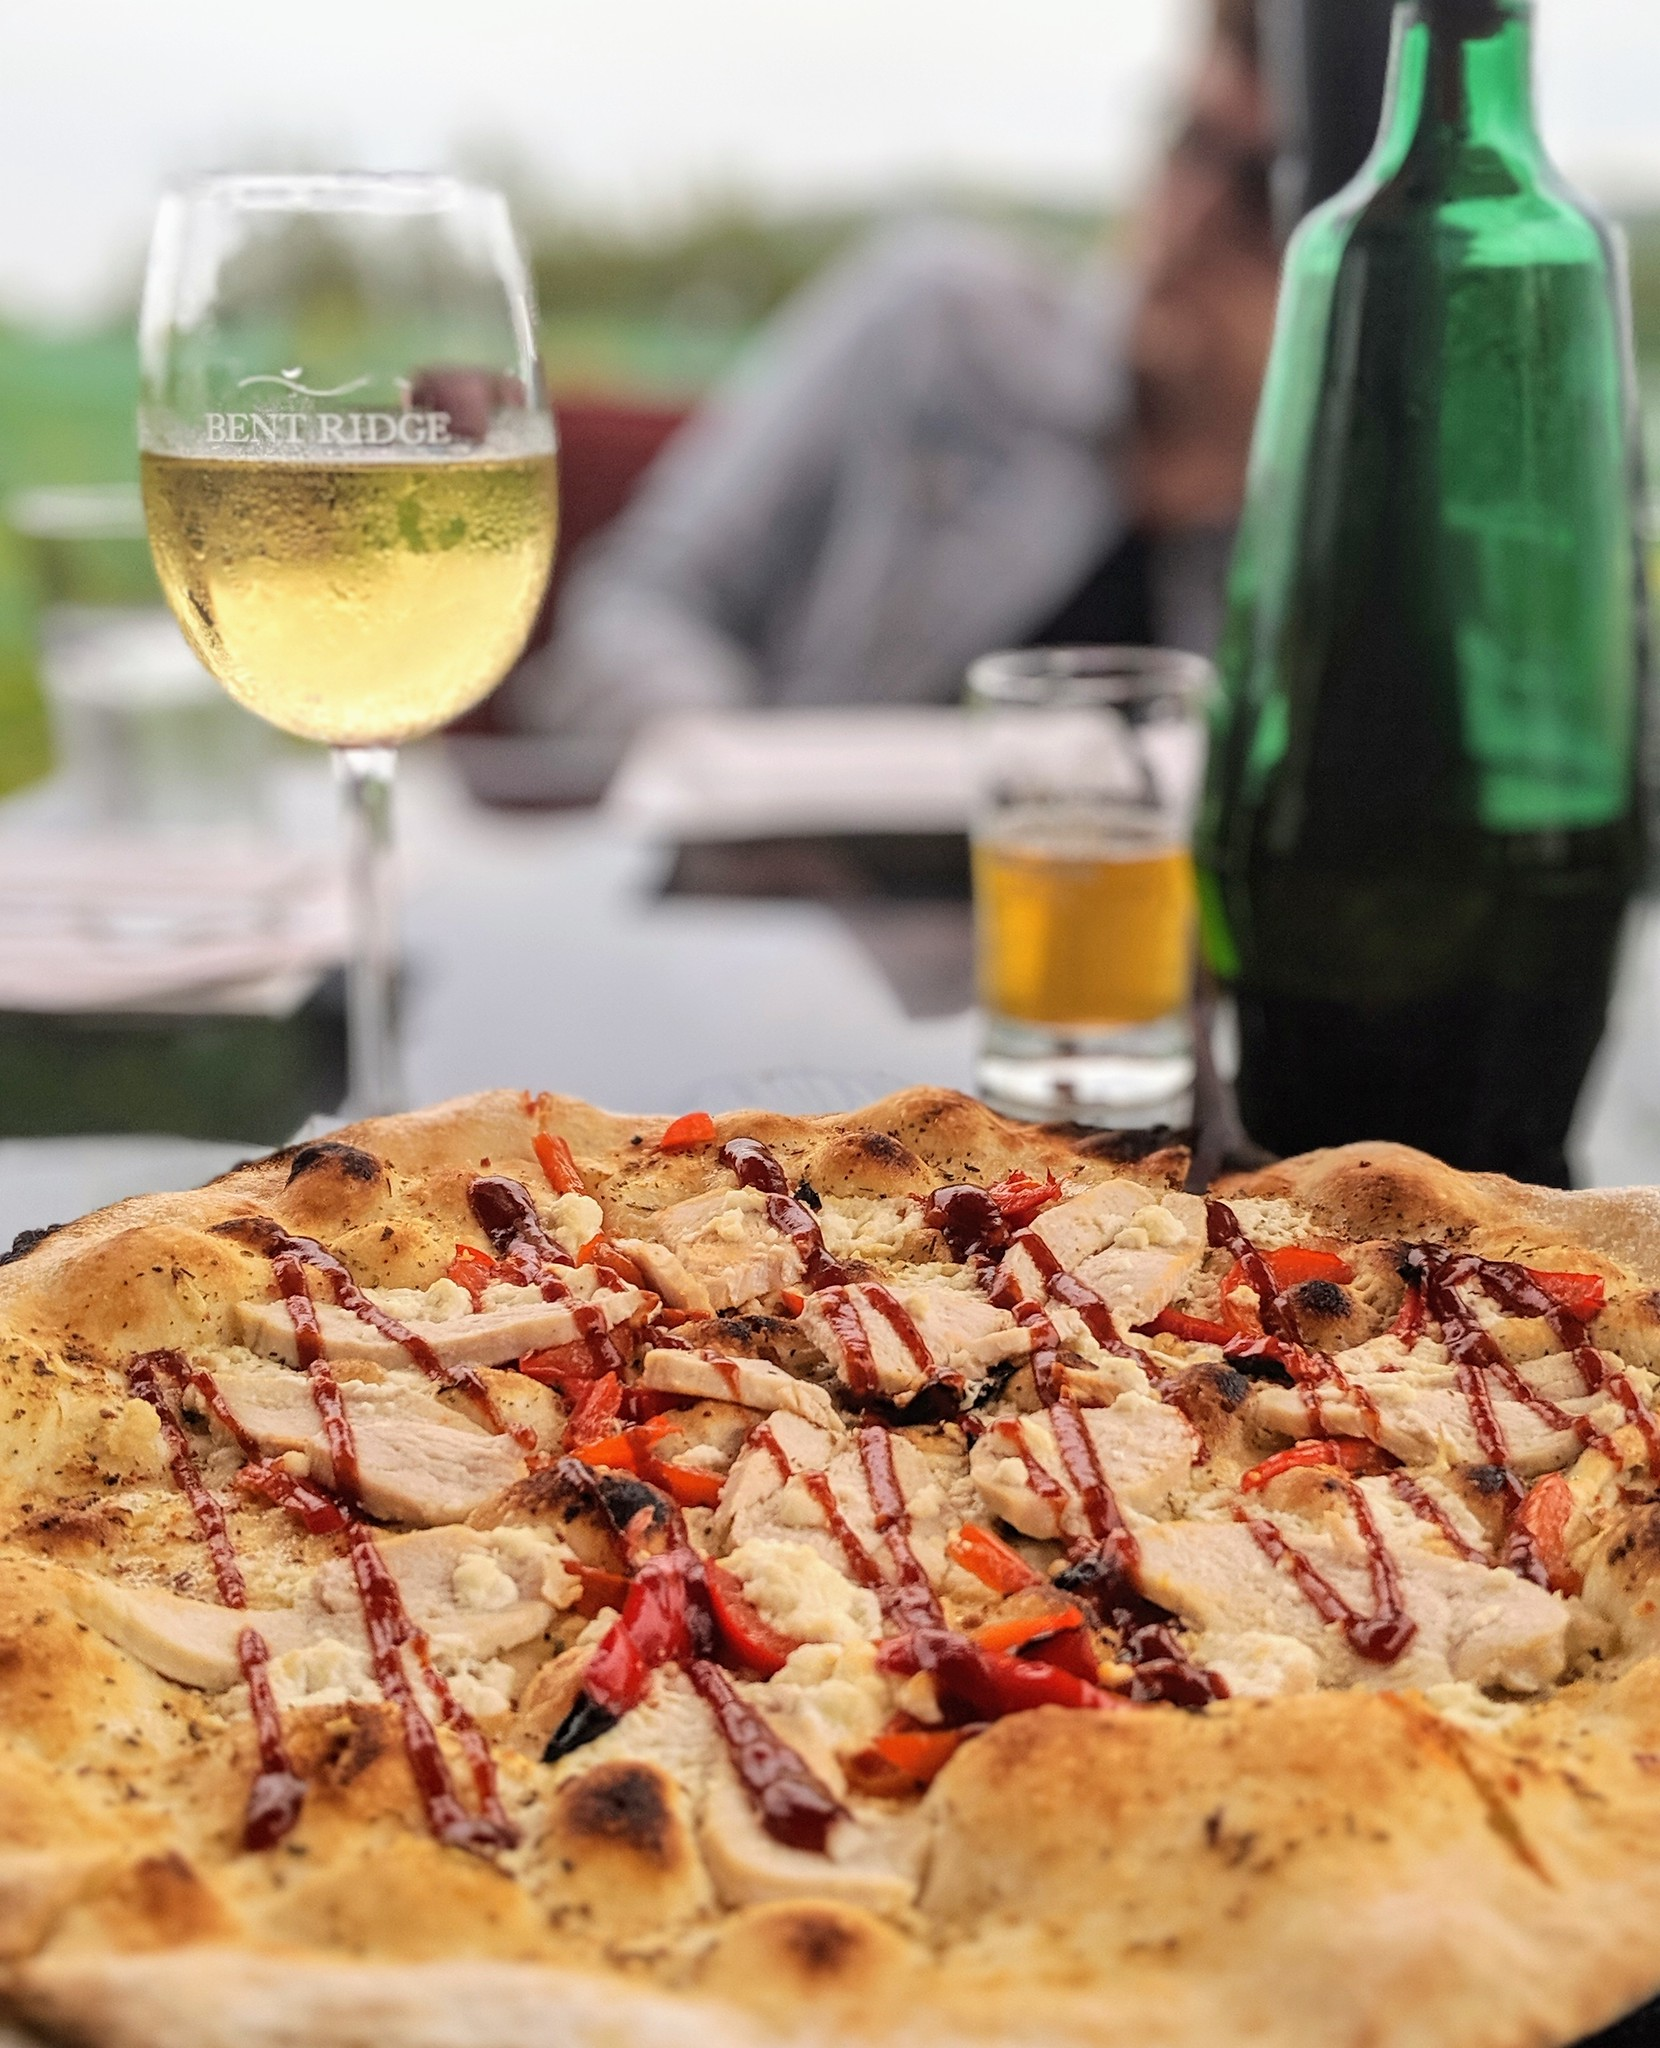 Barbecue chicken pizza and white wine at Bent Ridge Winery in Nova Scotia